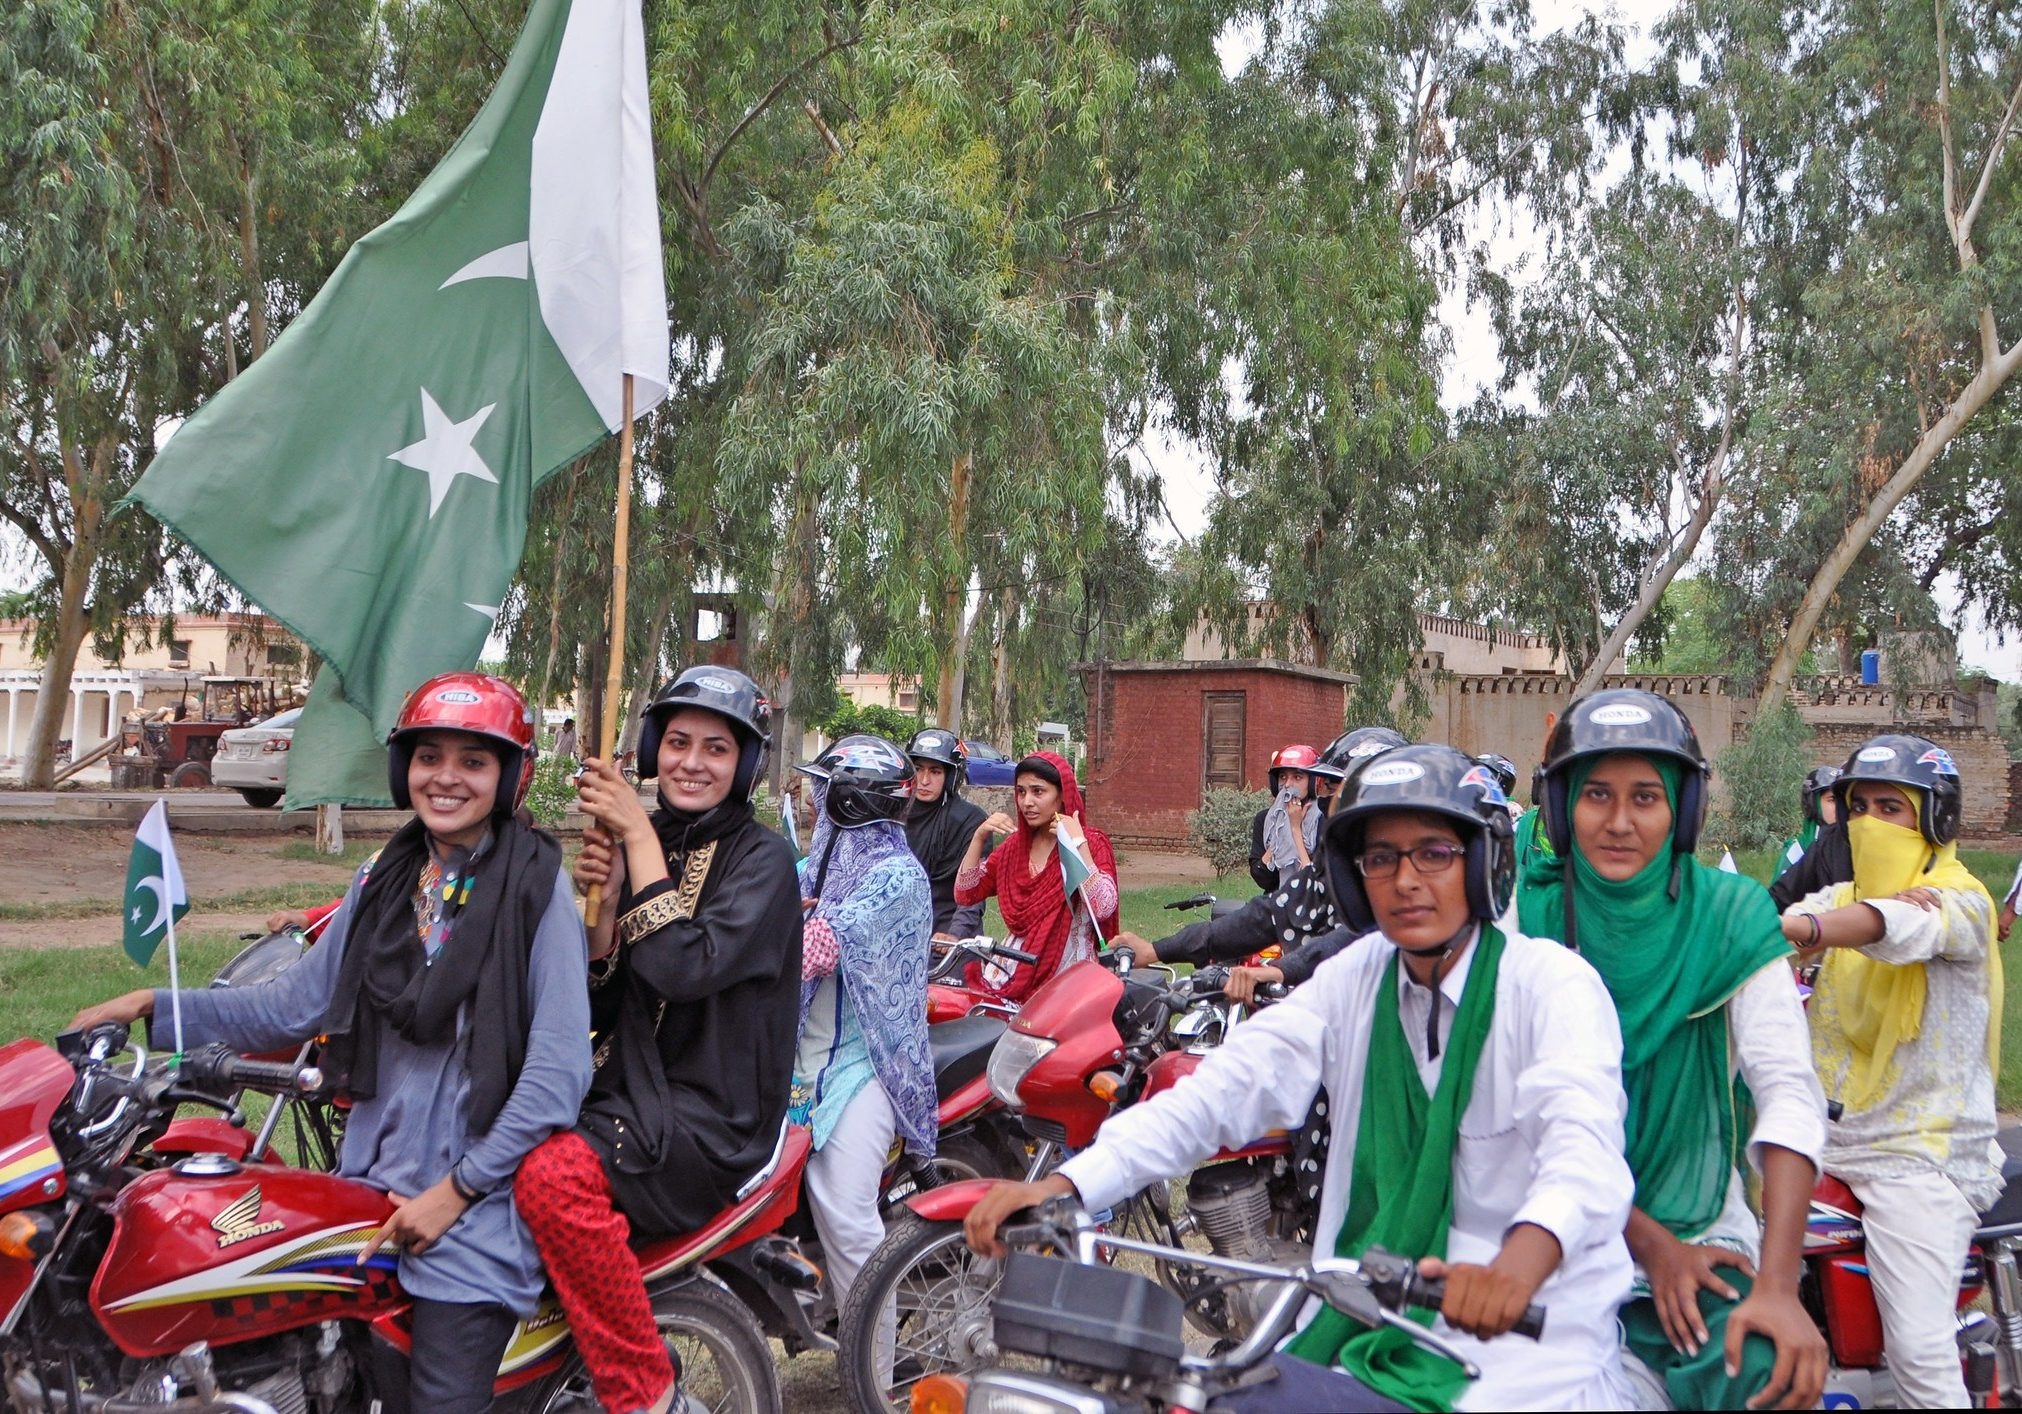 Riders at the Women on Wheels launch in Pakistan in 2016. (Photo: UN Women/Henriette Bjoerge)